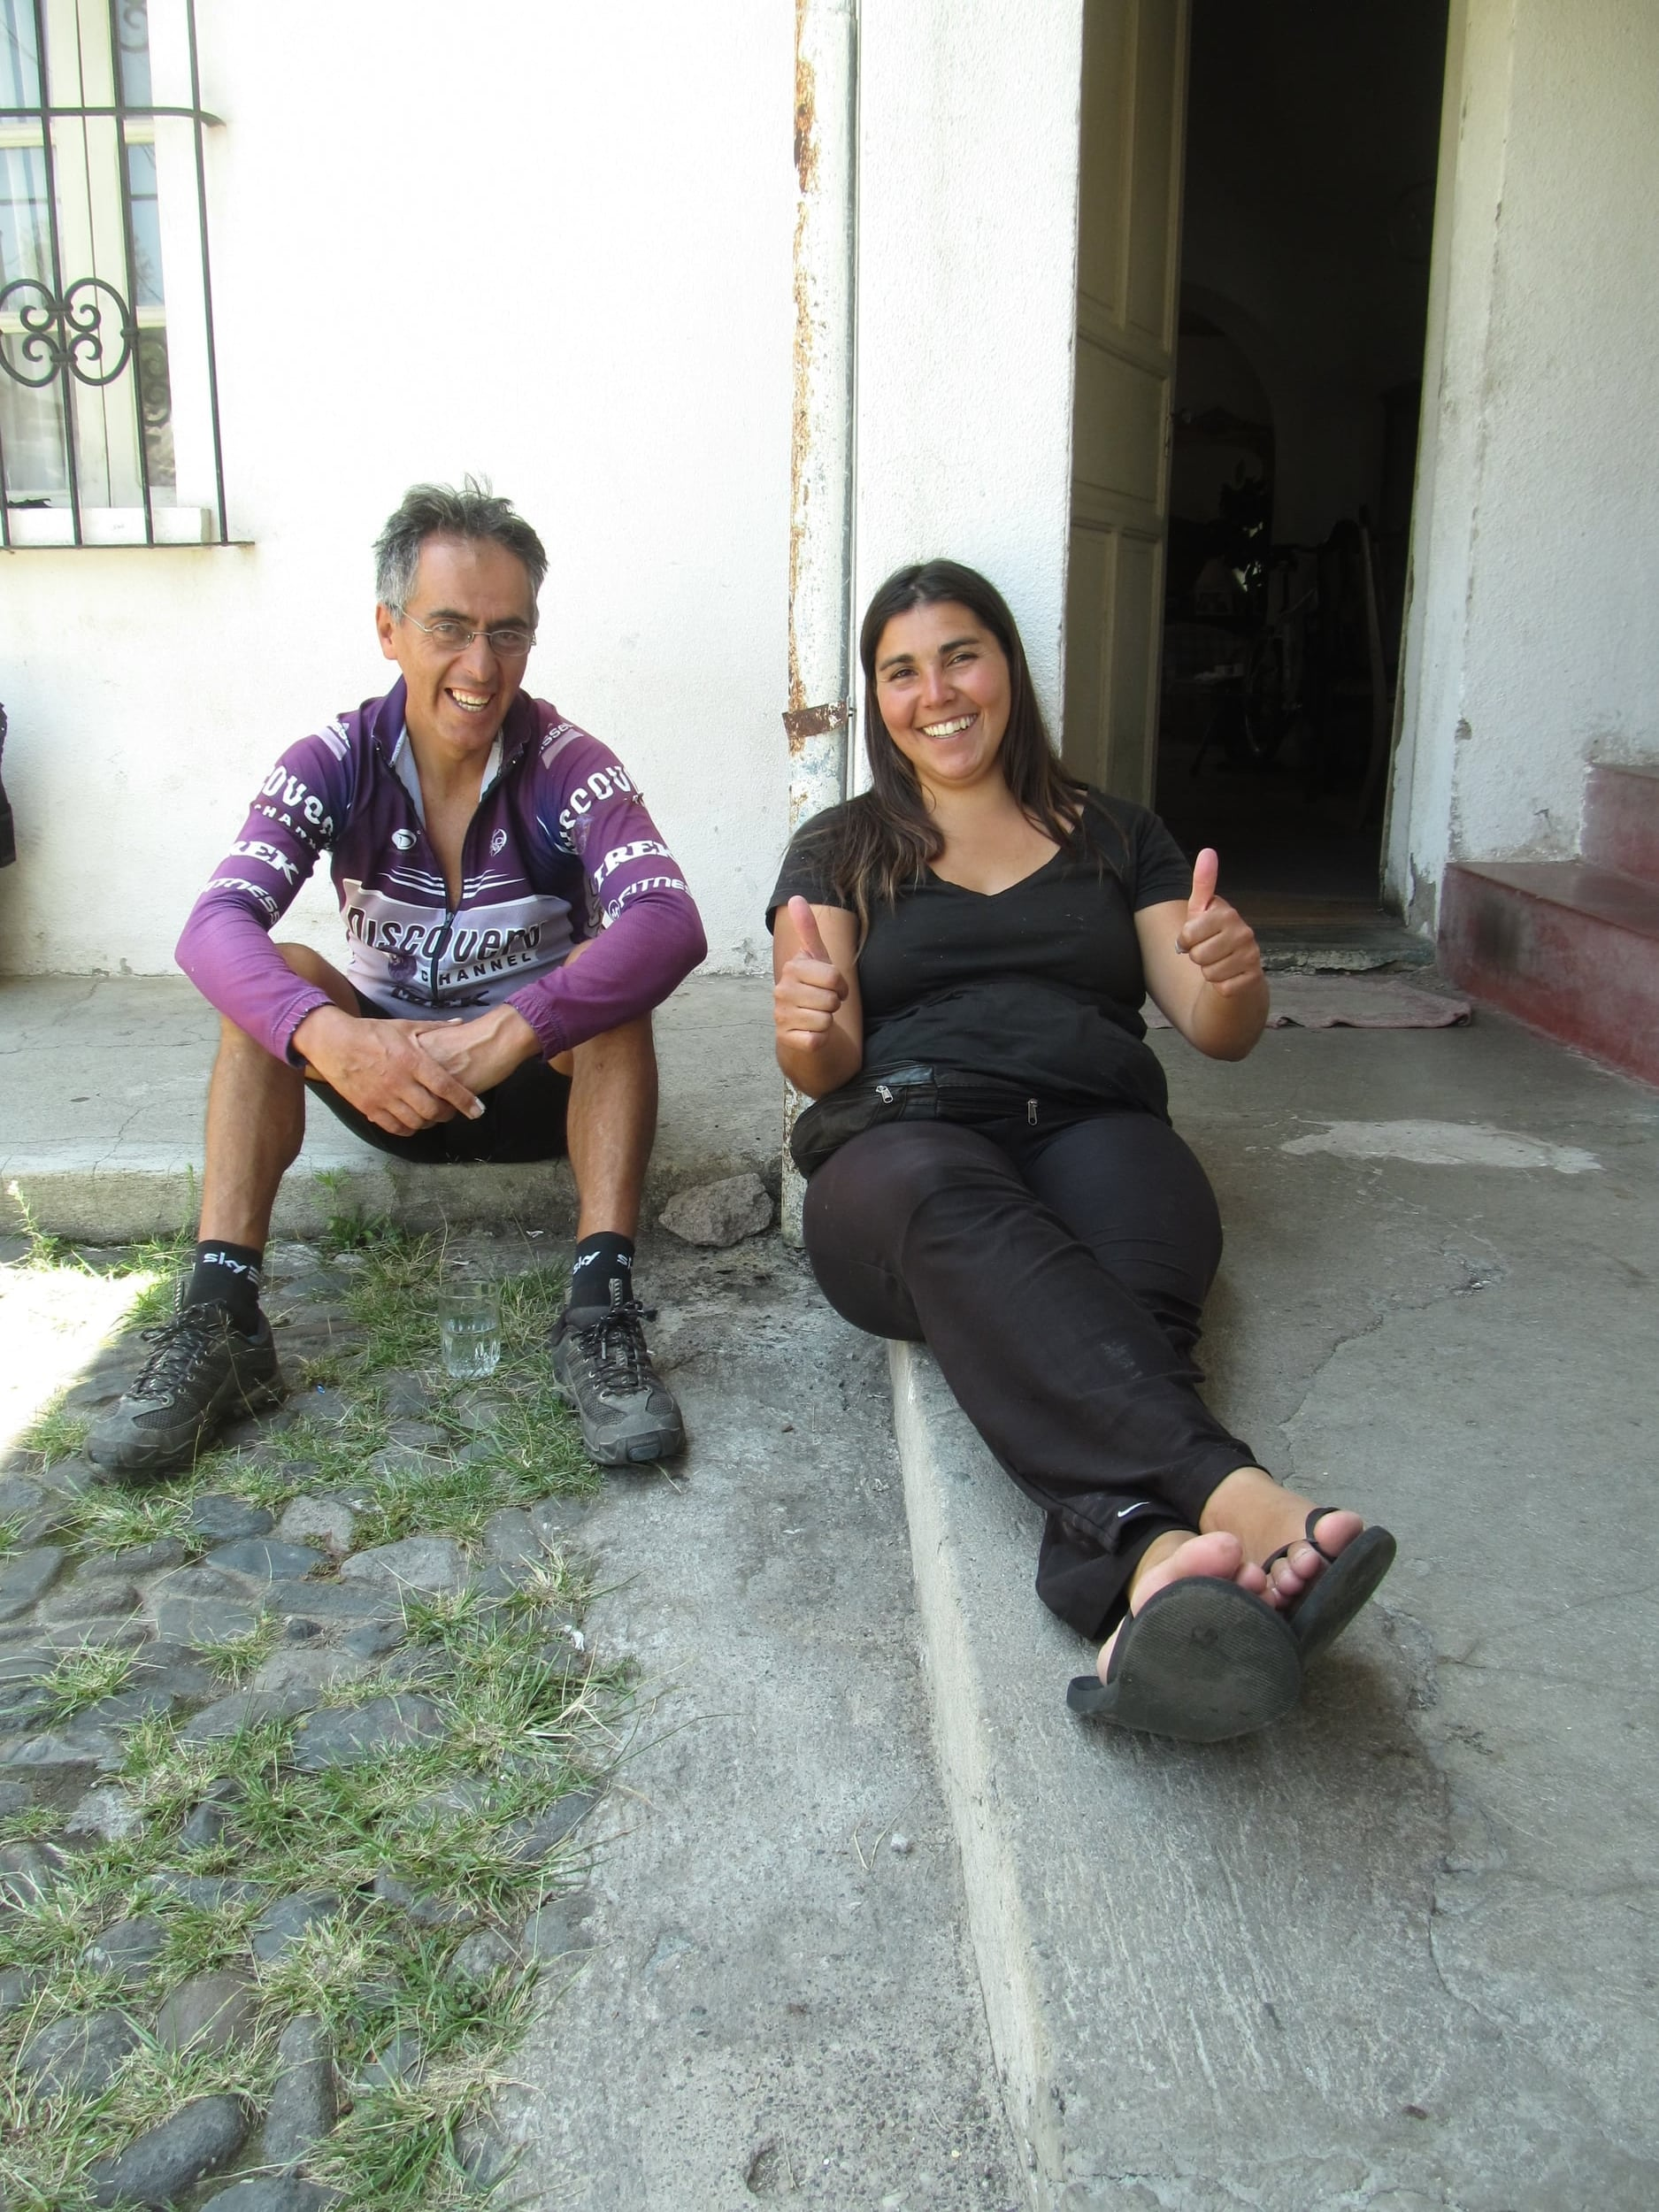 Santiago, the hero behind the Casa de Ciclistas in Tumbaco, and Maria del Mar, another cycle tourist from Argentina.